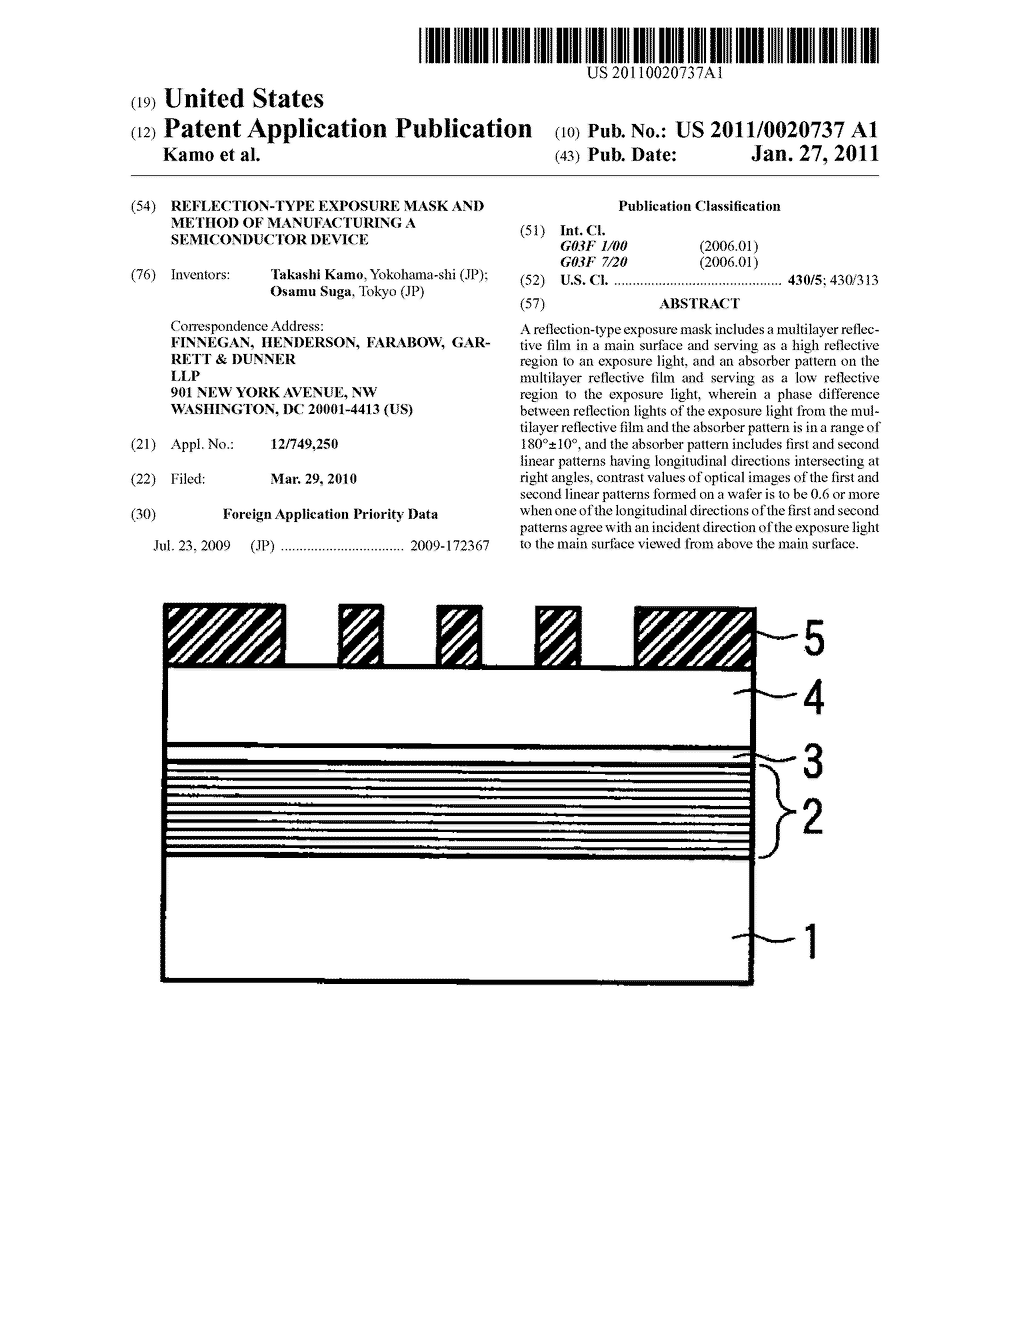 REFLECTION-TYPE EXPOSURE MASK AND METHOD OF MANUFACTURING A SEMICONDUCTOR DEVICE - diagram, schematic, and image 01